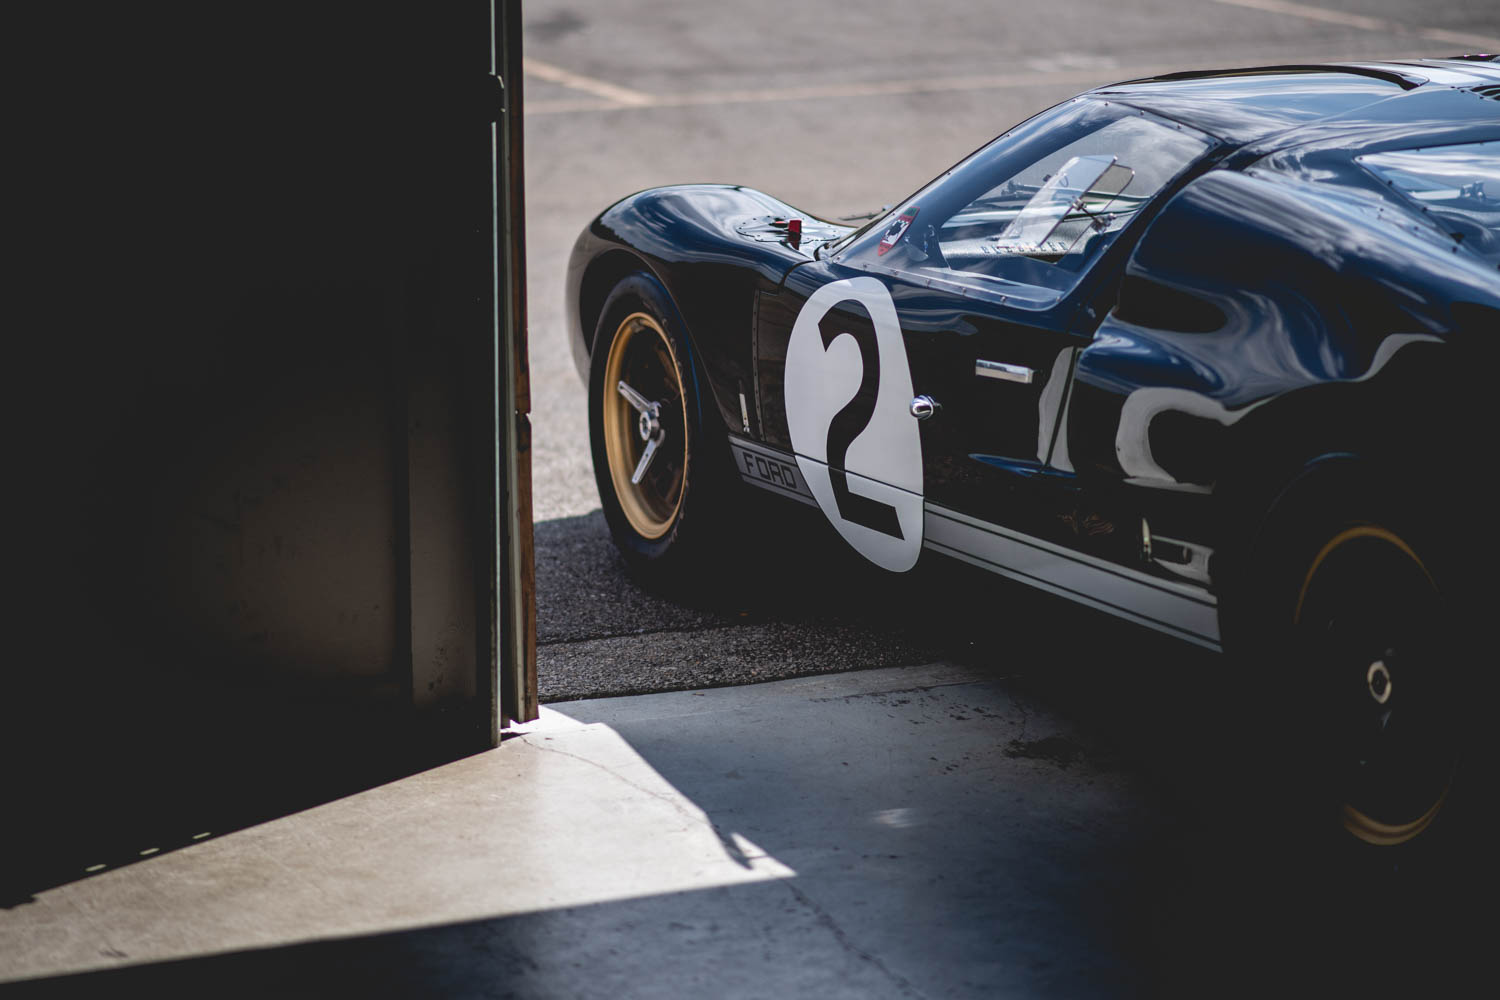 In 1966, Ford replaced the GT40's smallblock V-8 with the big-block 427, creating the Mark II. The larger engine required the scoops ahead of the rear tires.